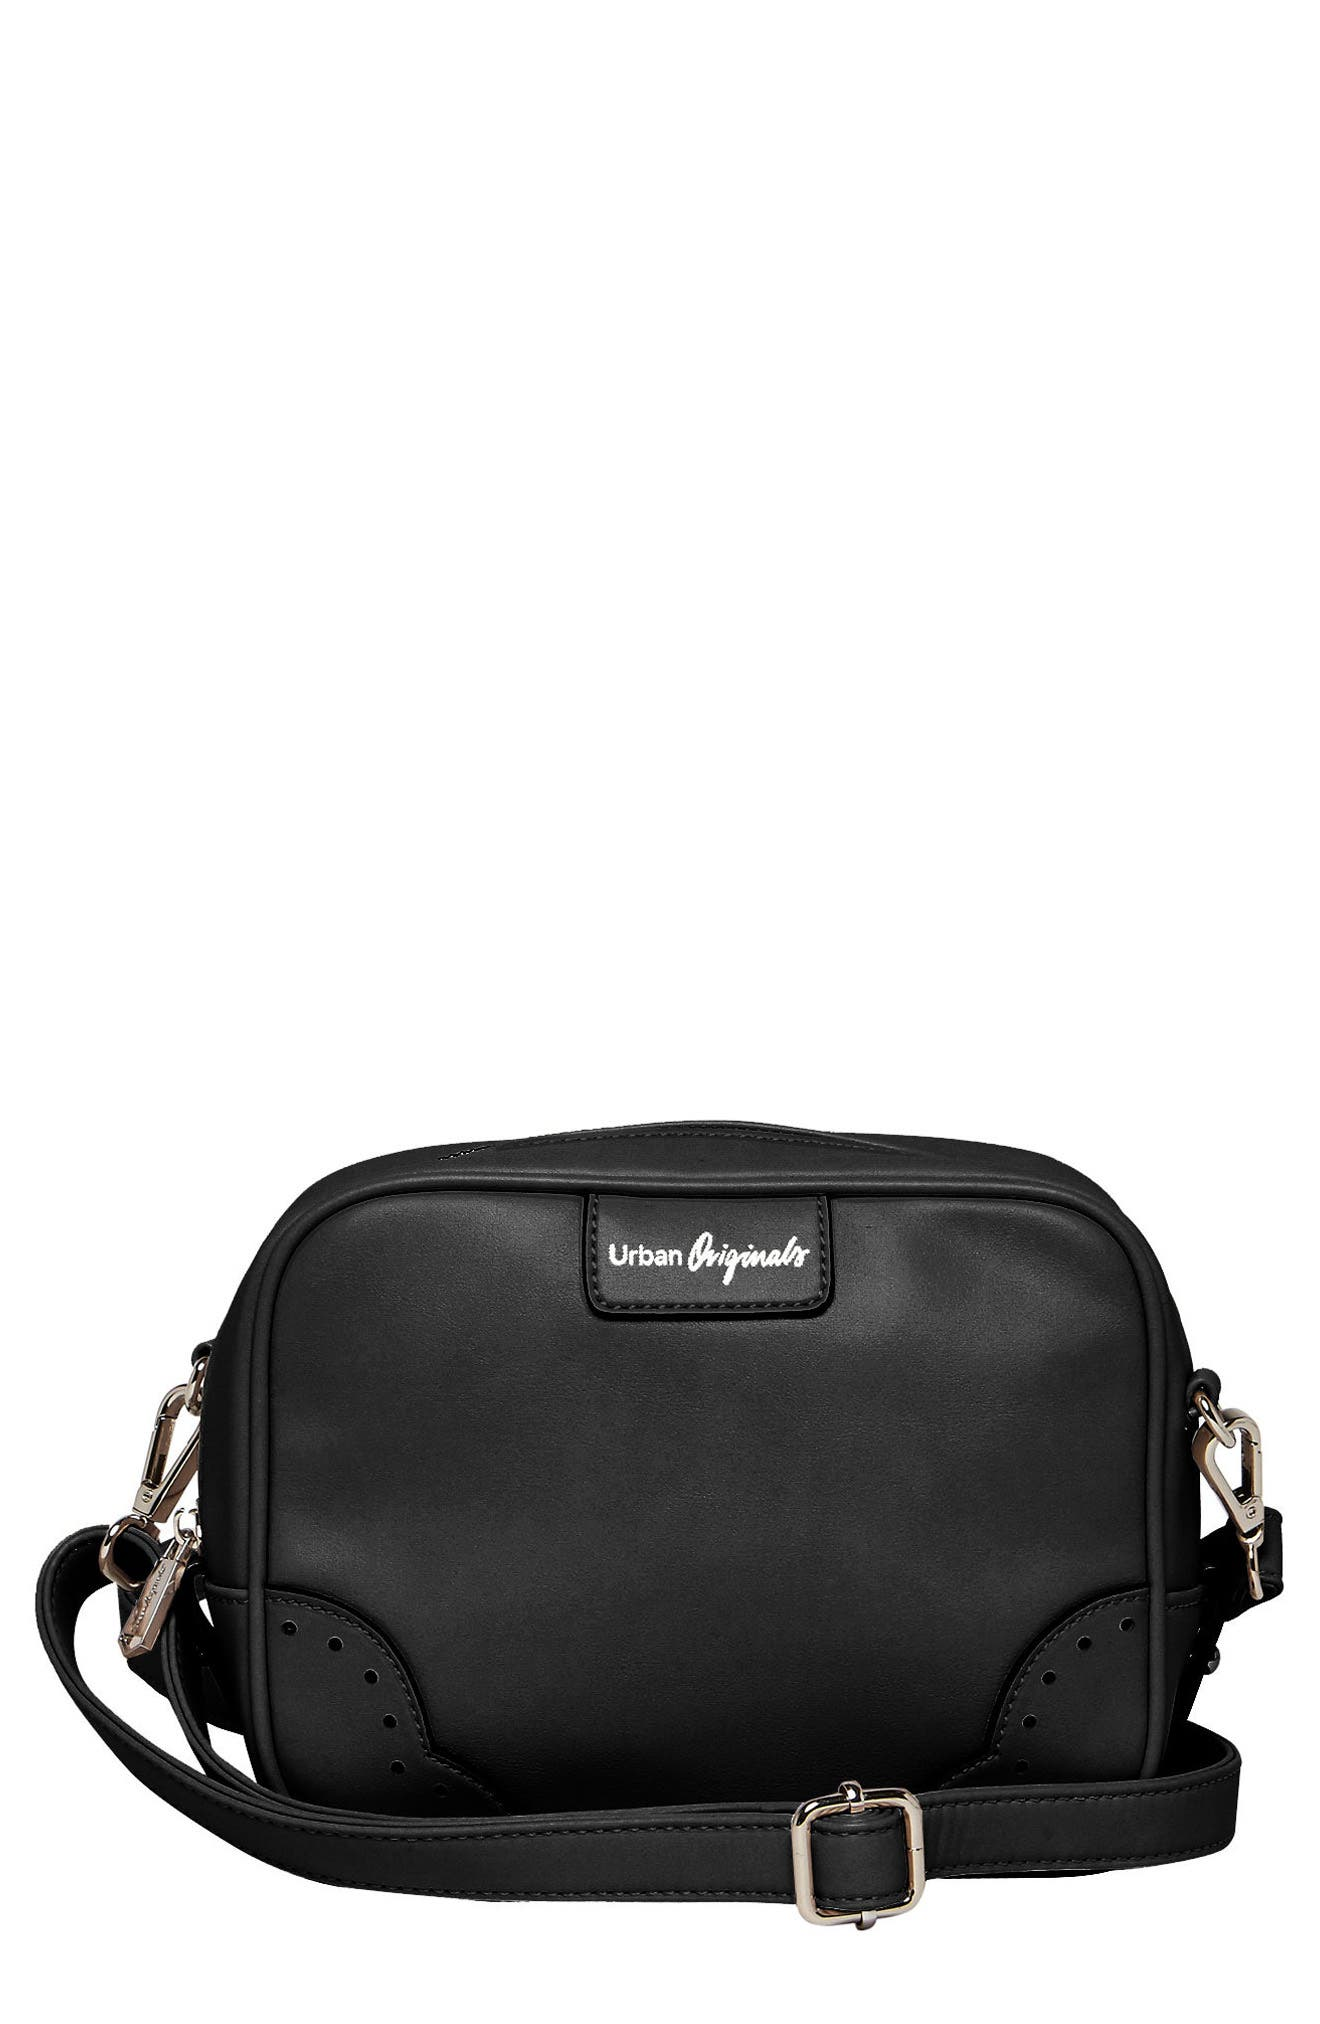 Main Image - Urban Originals Splendour Vegan Leather Crossbody Bag